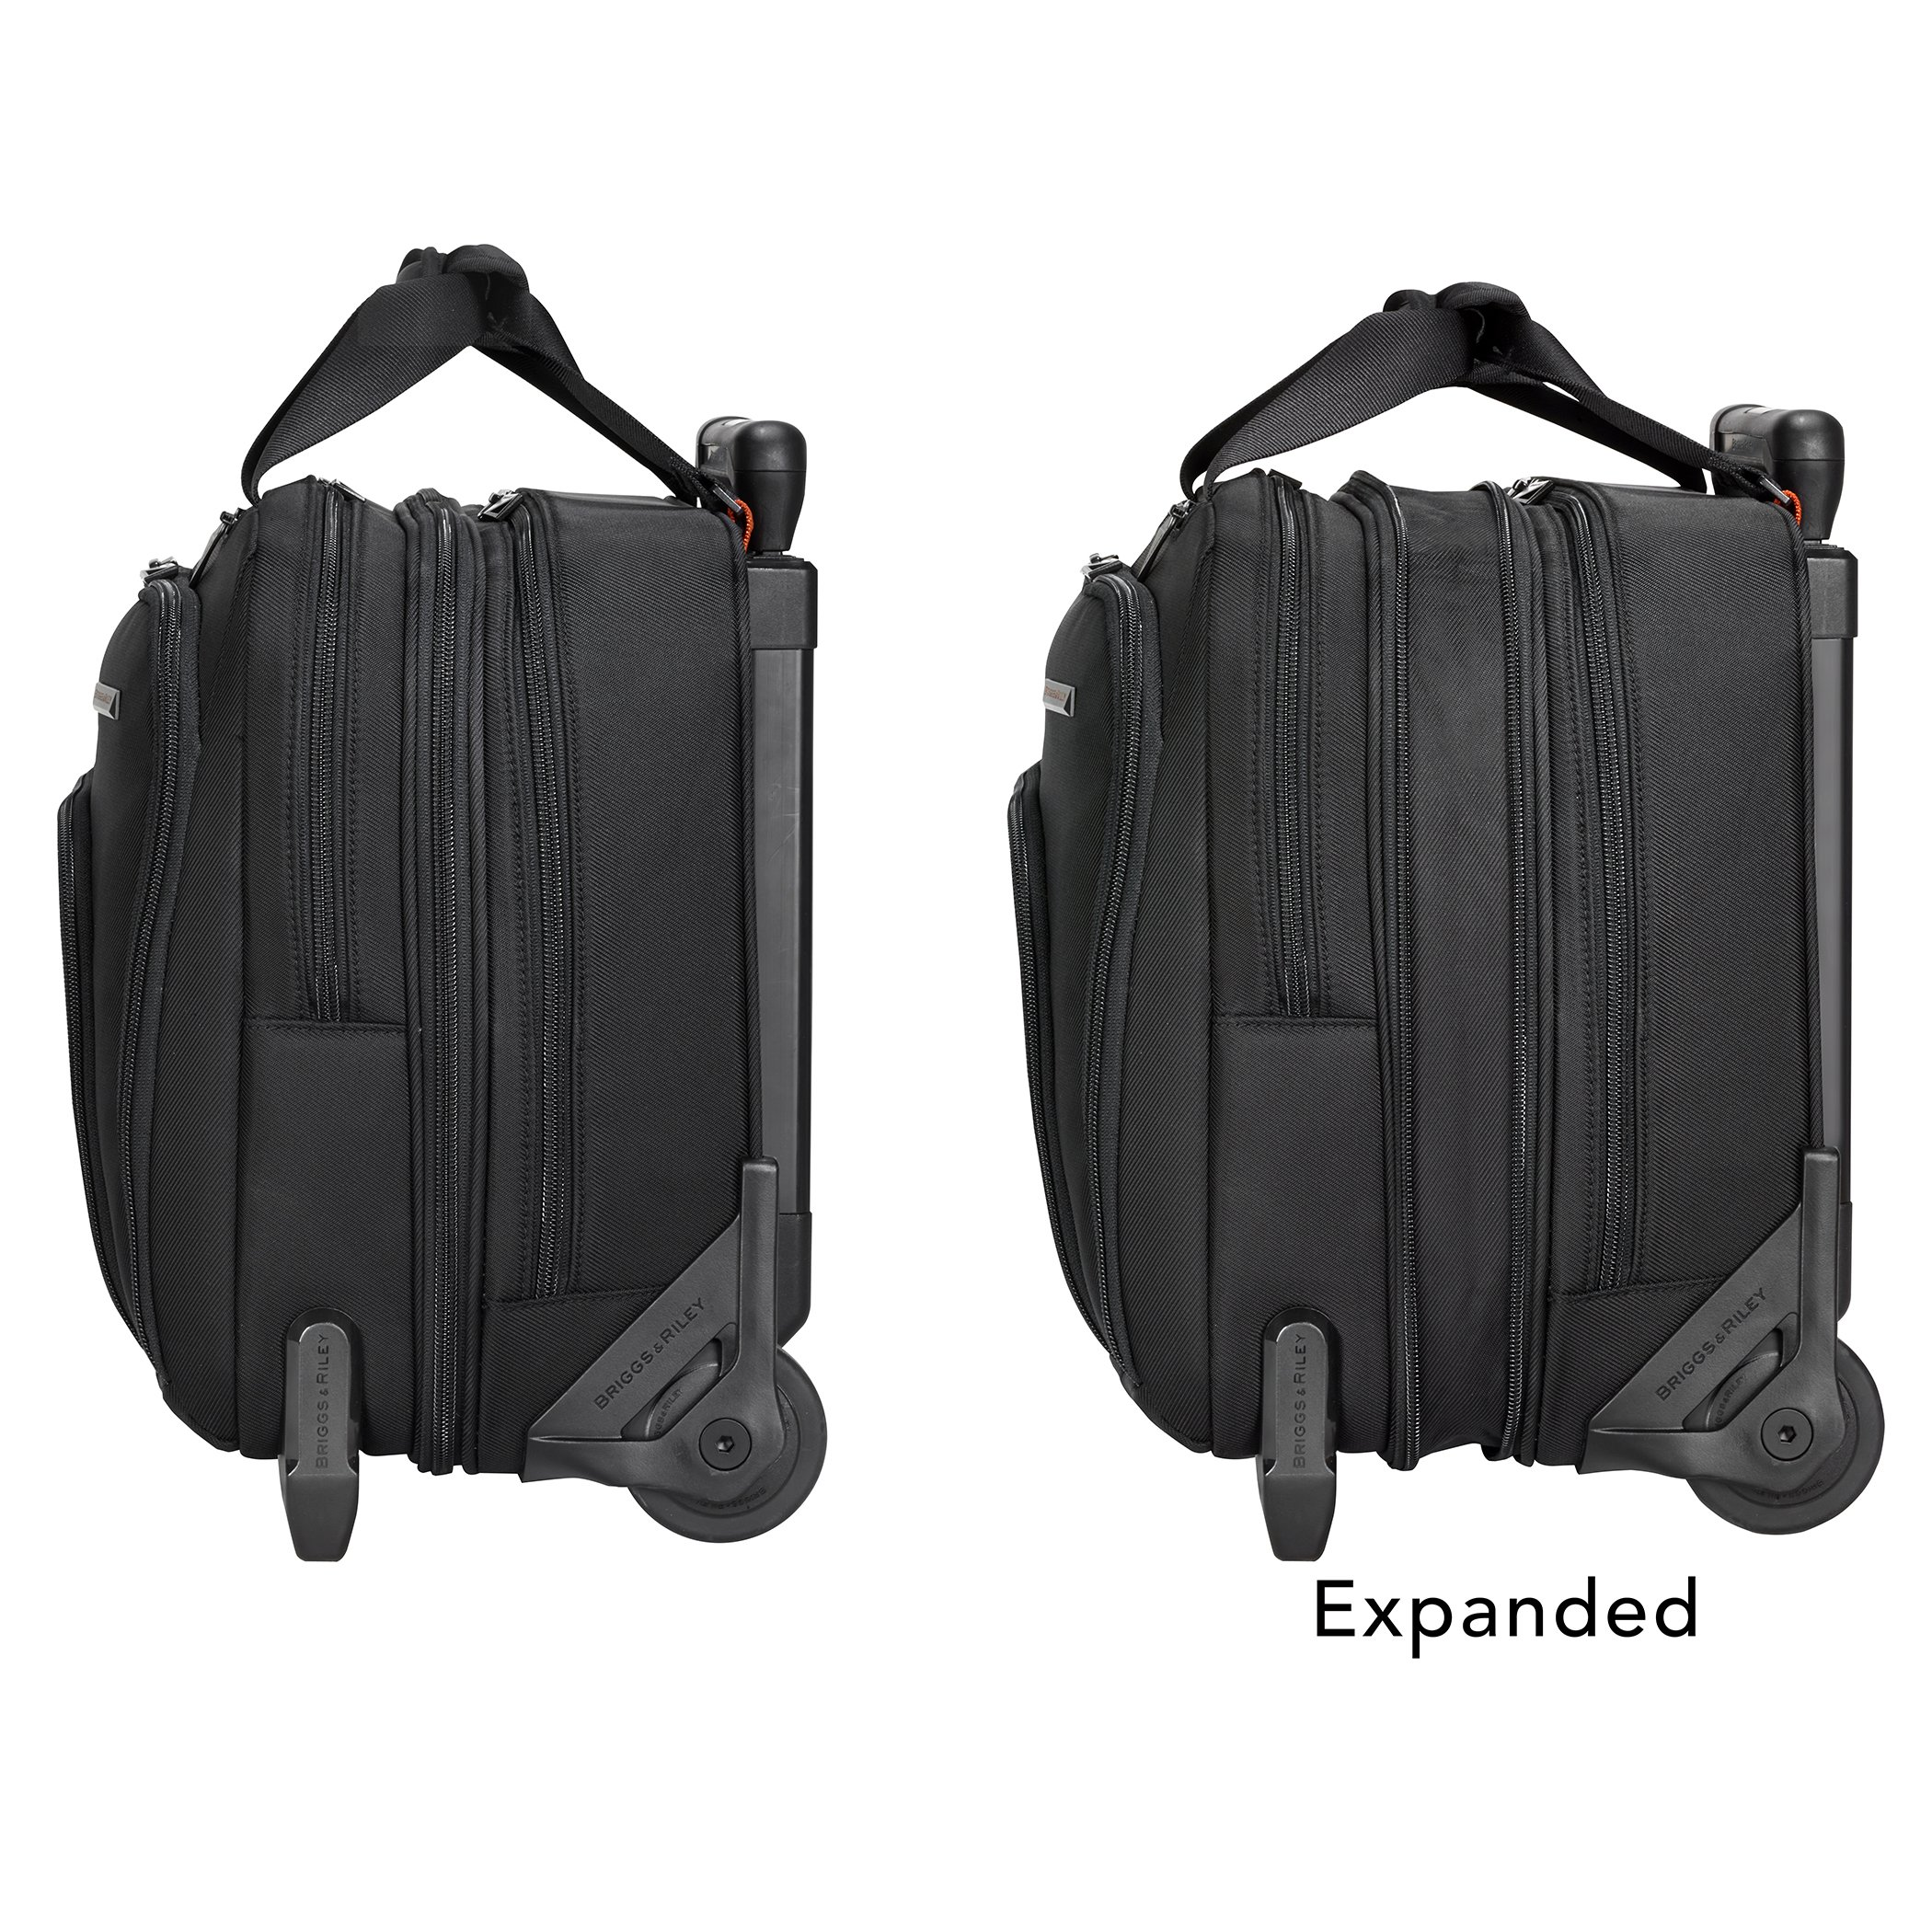 Briggs & Riley Propel Expandable Rolling Case, Black, One Size by Briggs & Riley